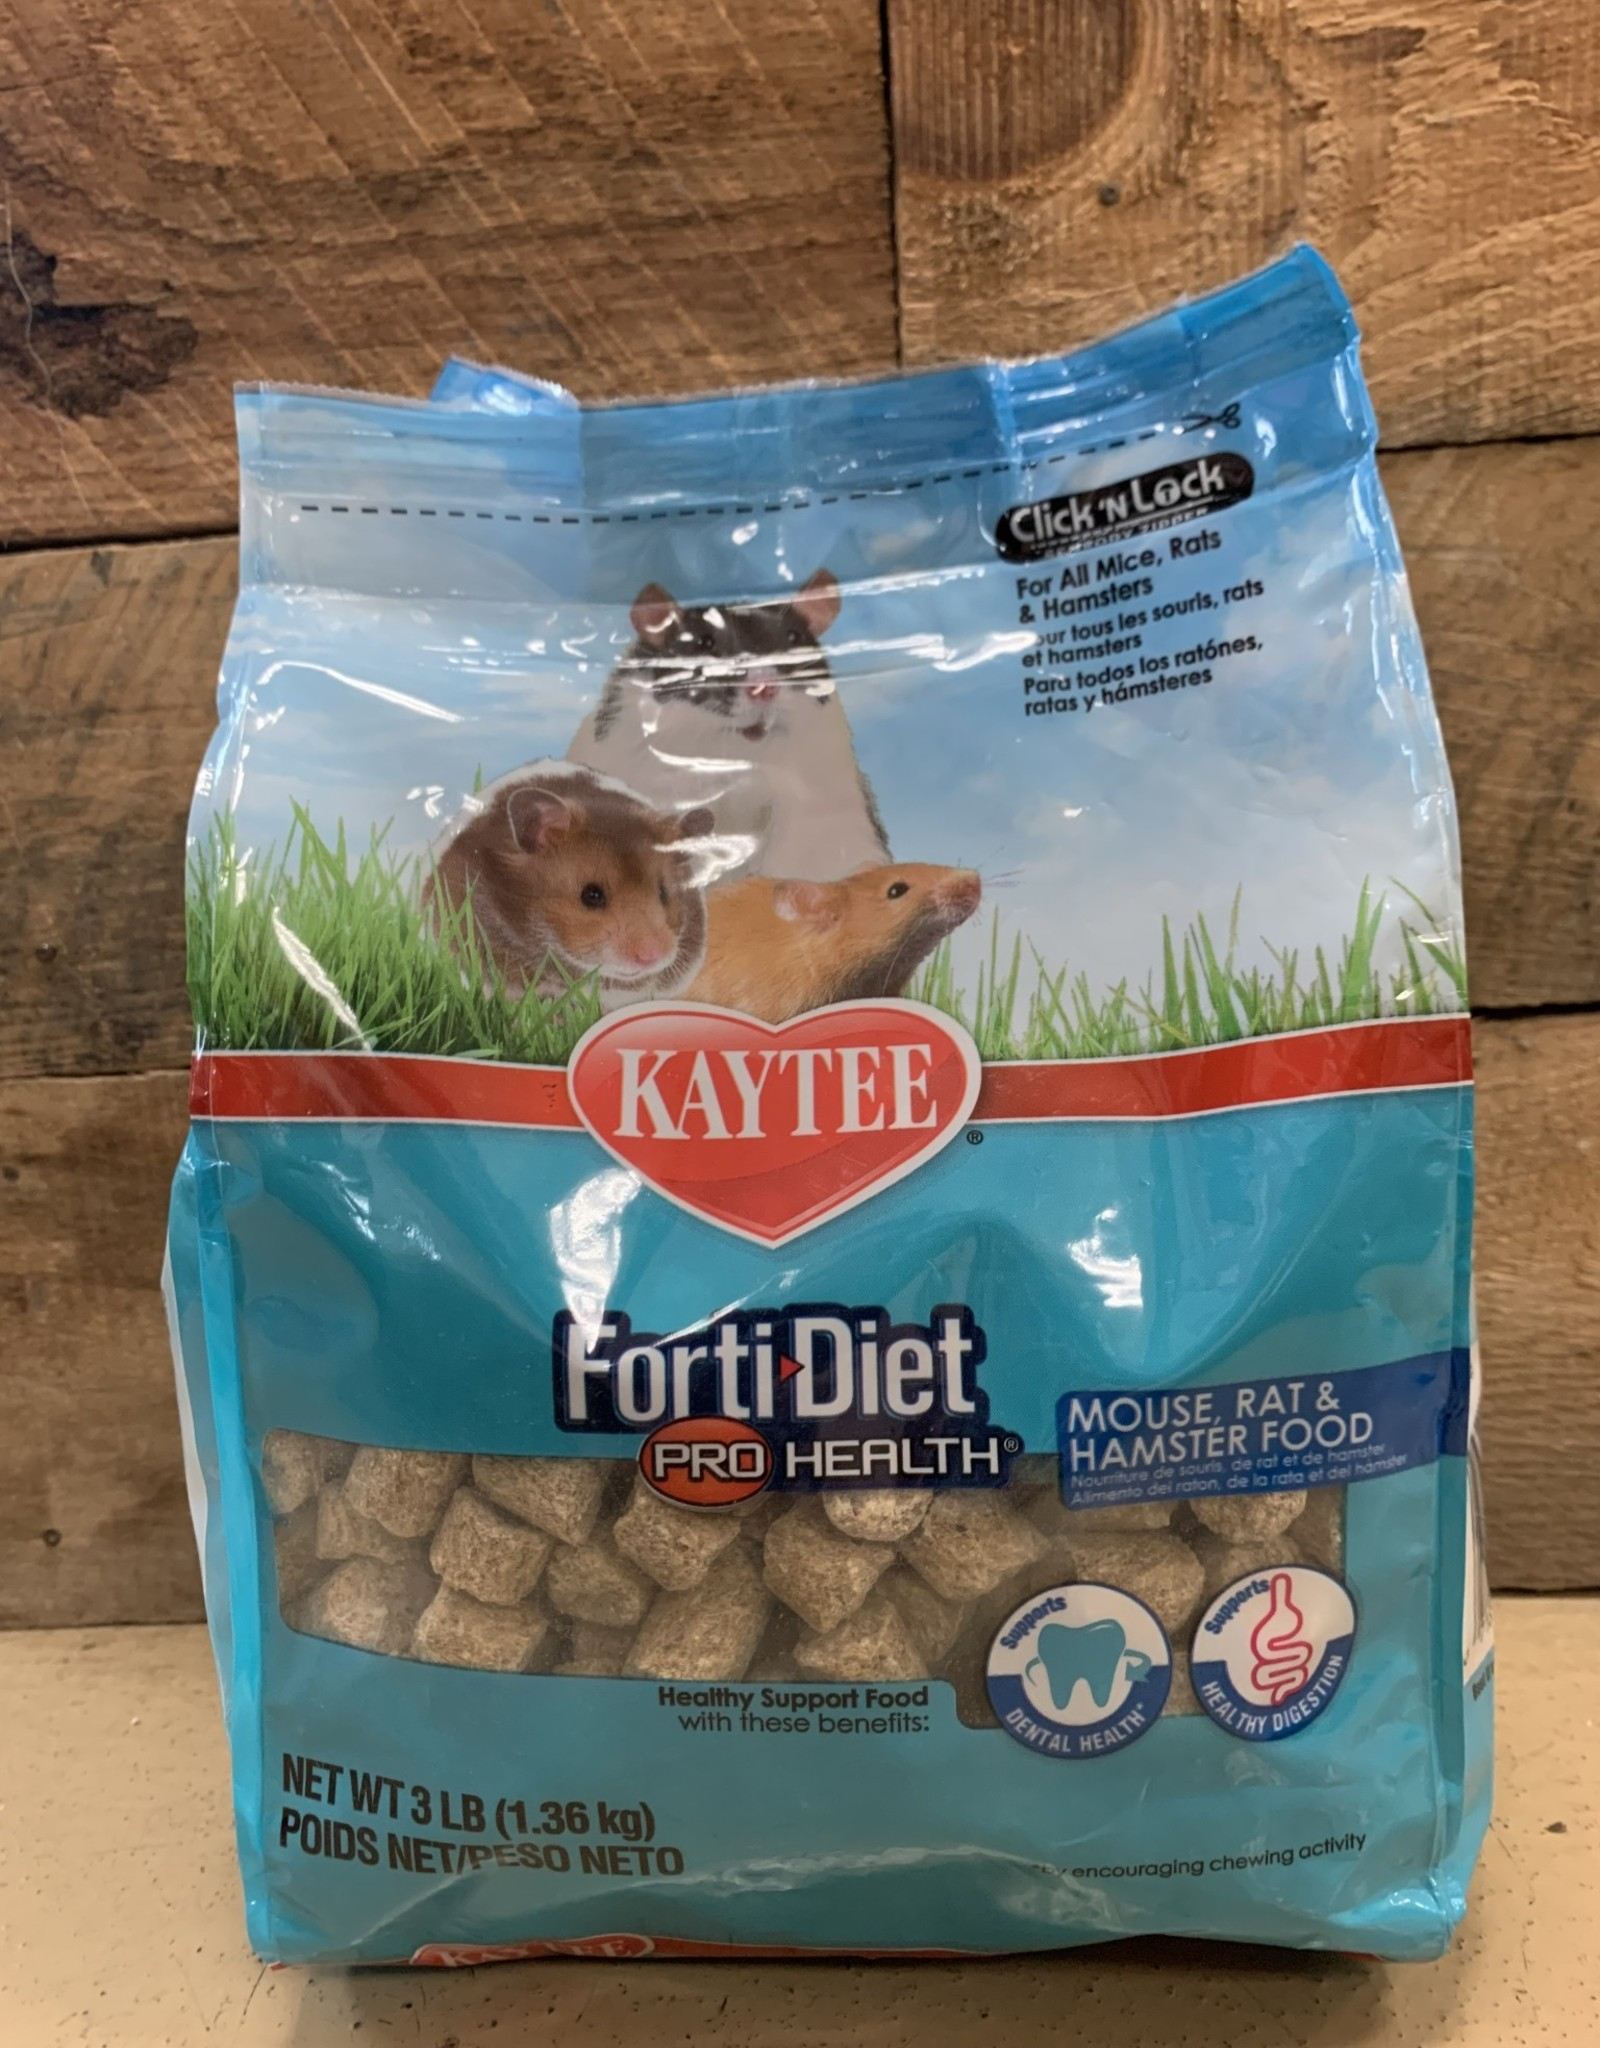 KAYTEE 3lb forti diet prohealth mouse rat